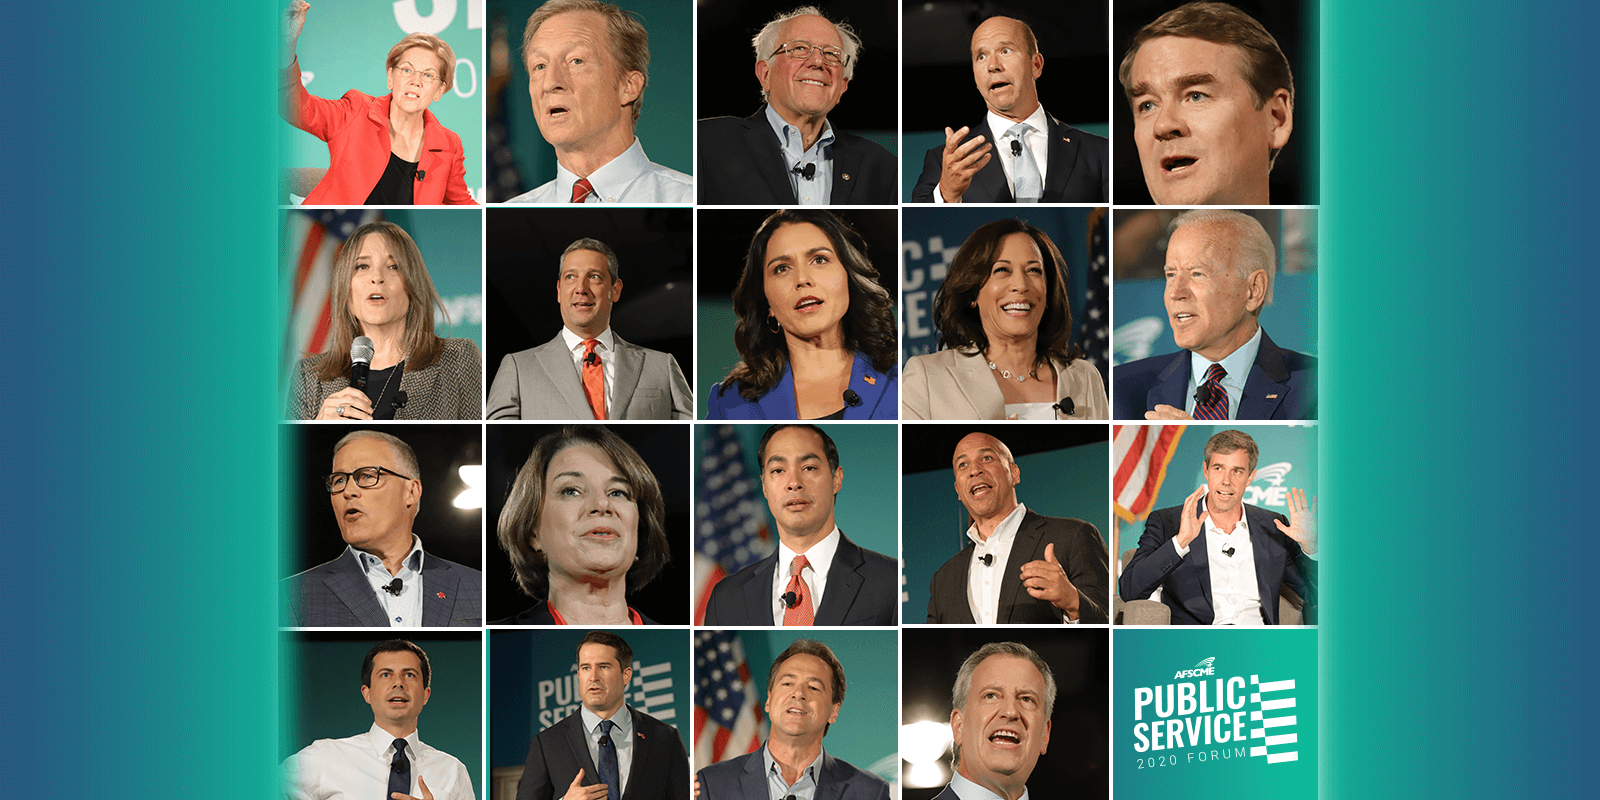 Photos of 15 of the candidates from the forum